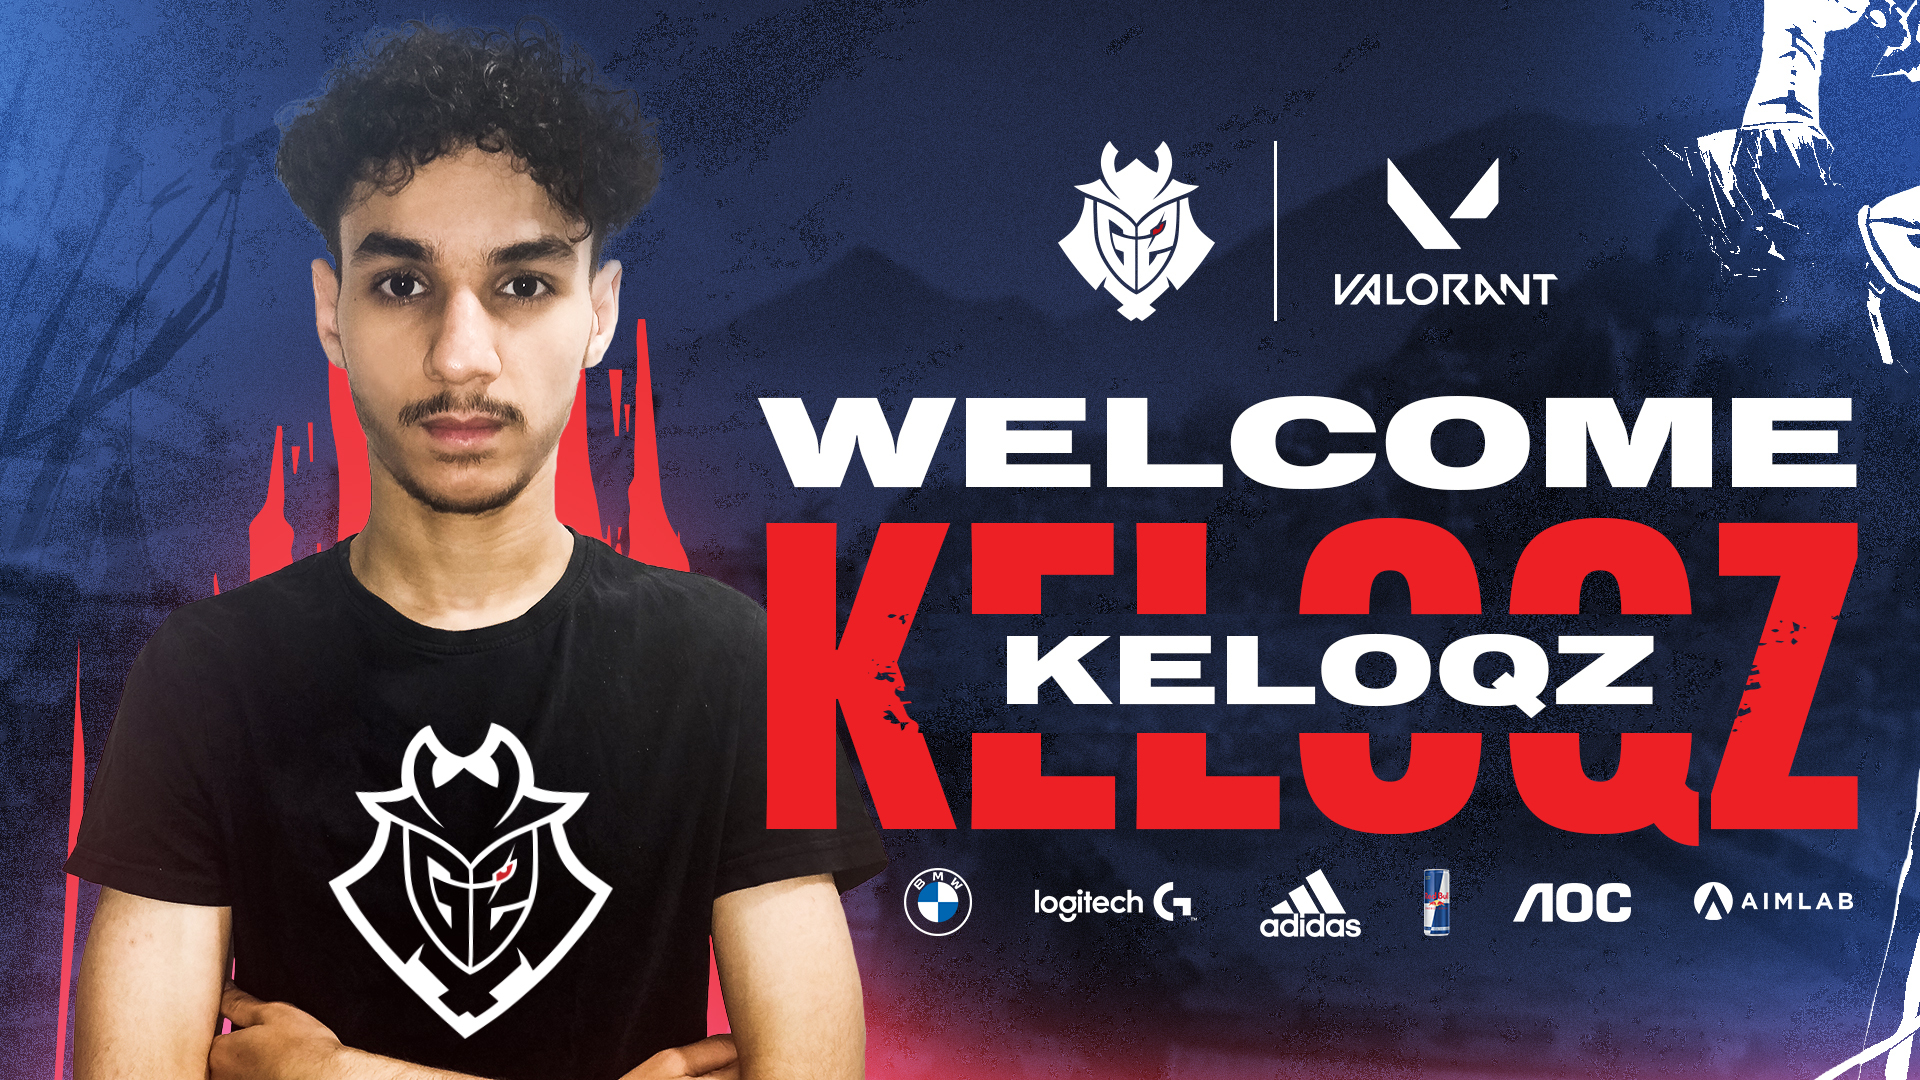 G2 replaces pyth with keloqz